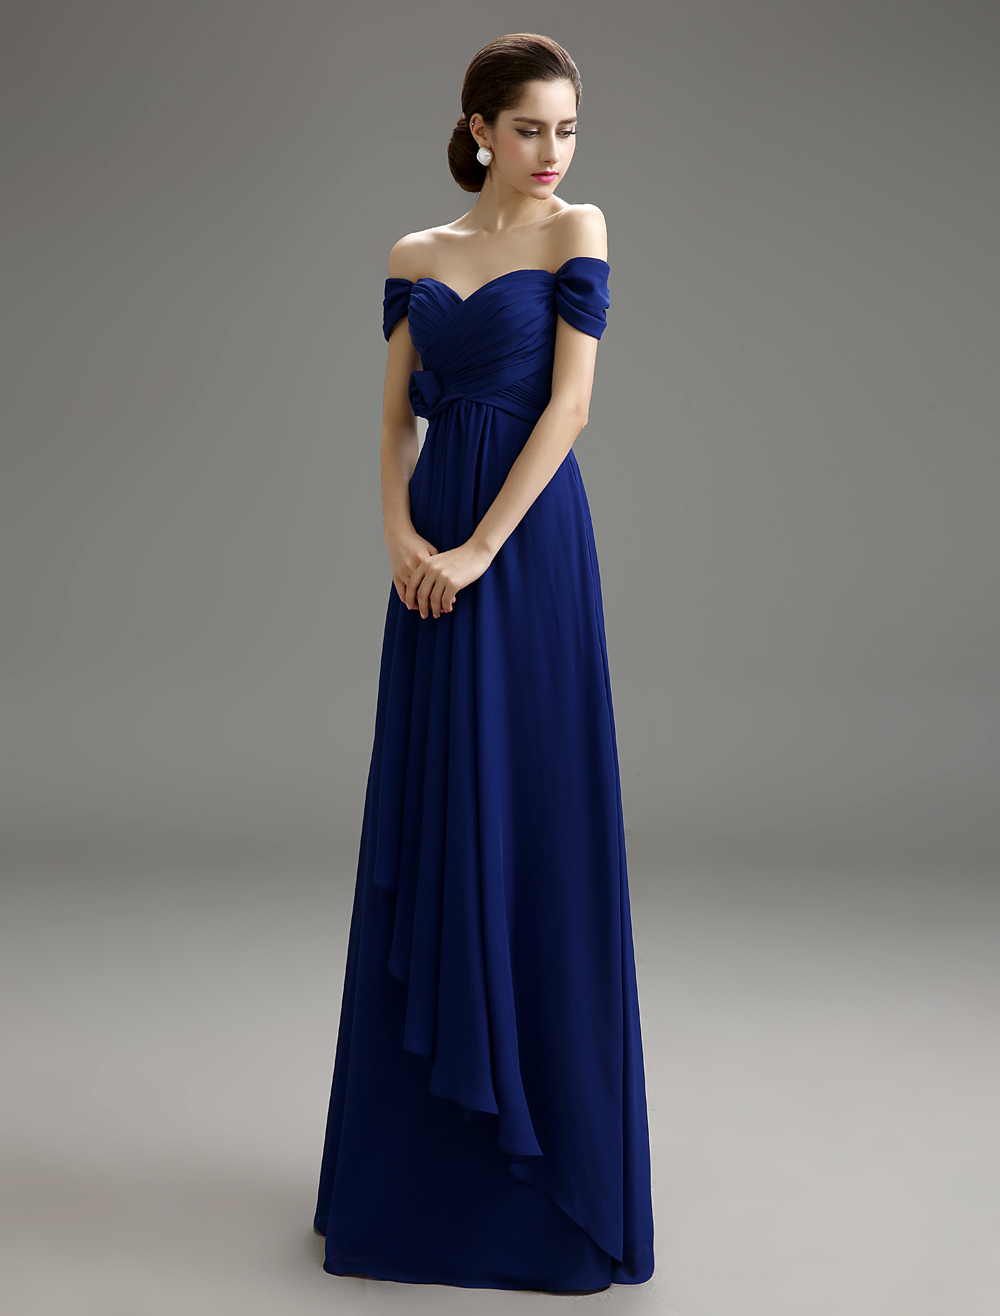 Sweetheart Chiffon Detachable Bridesmaid Dress with Off-The-Shoulder Wedding Guest Dress Milanoo